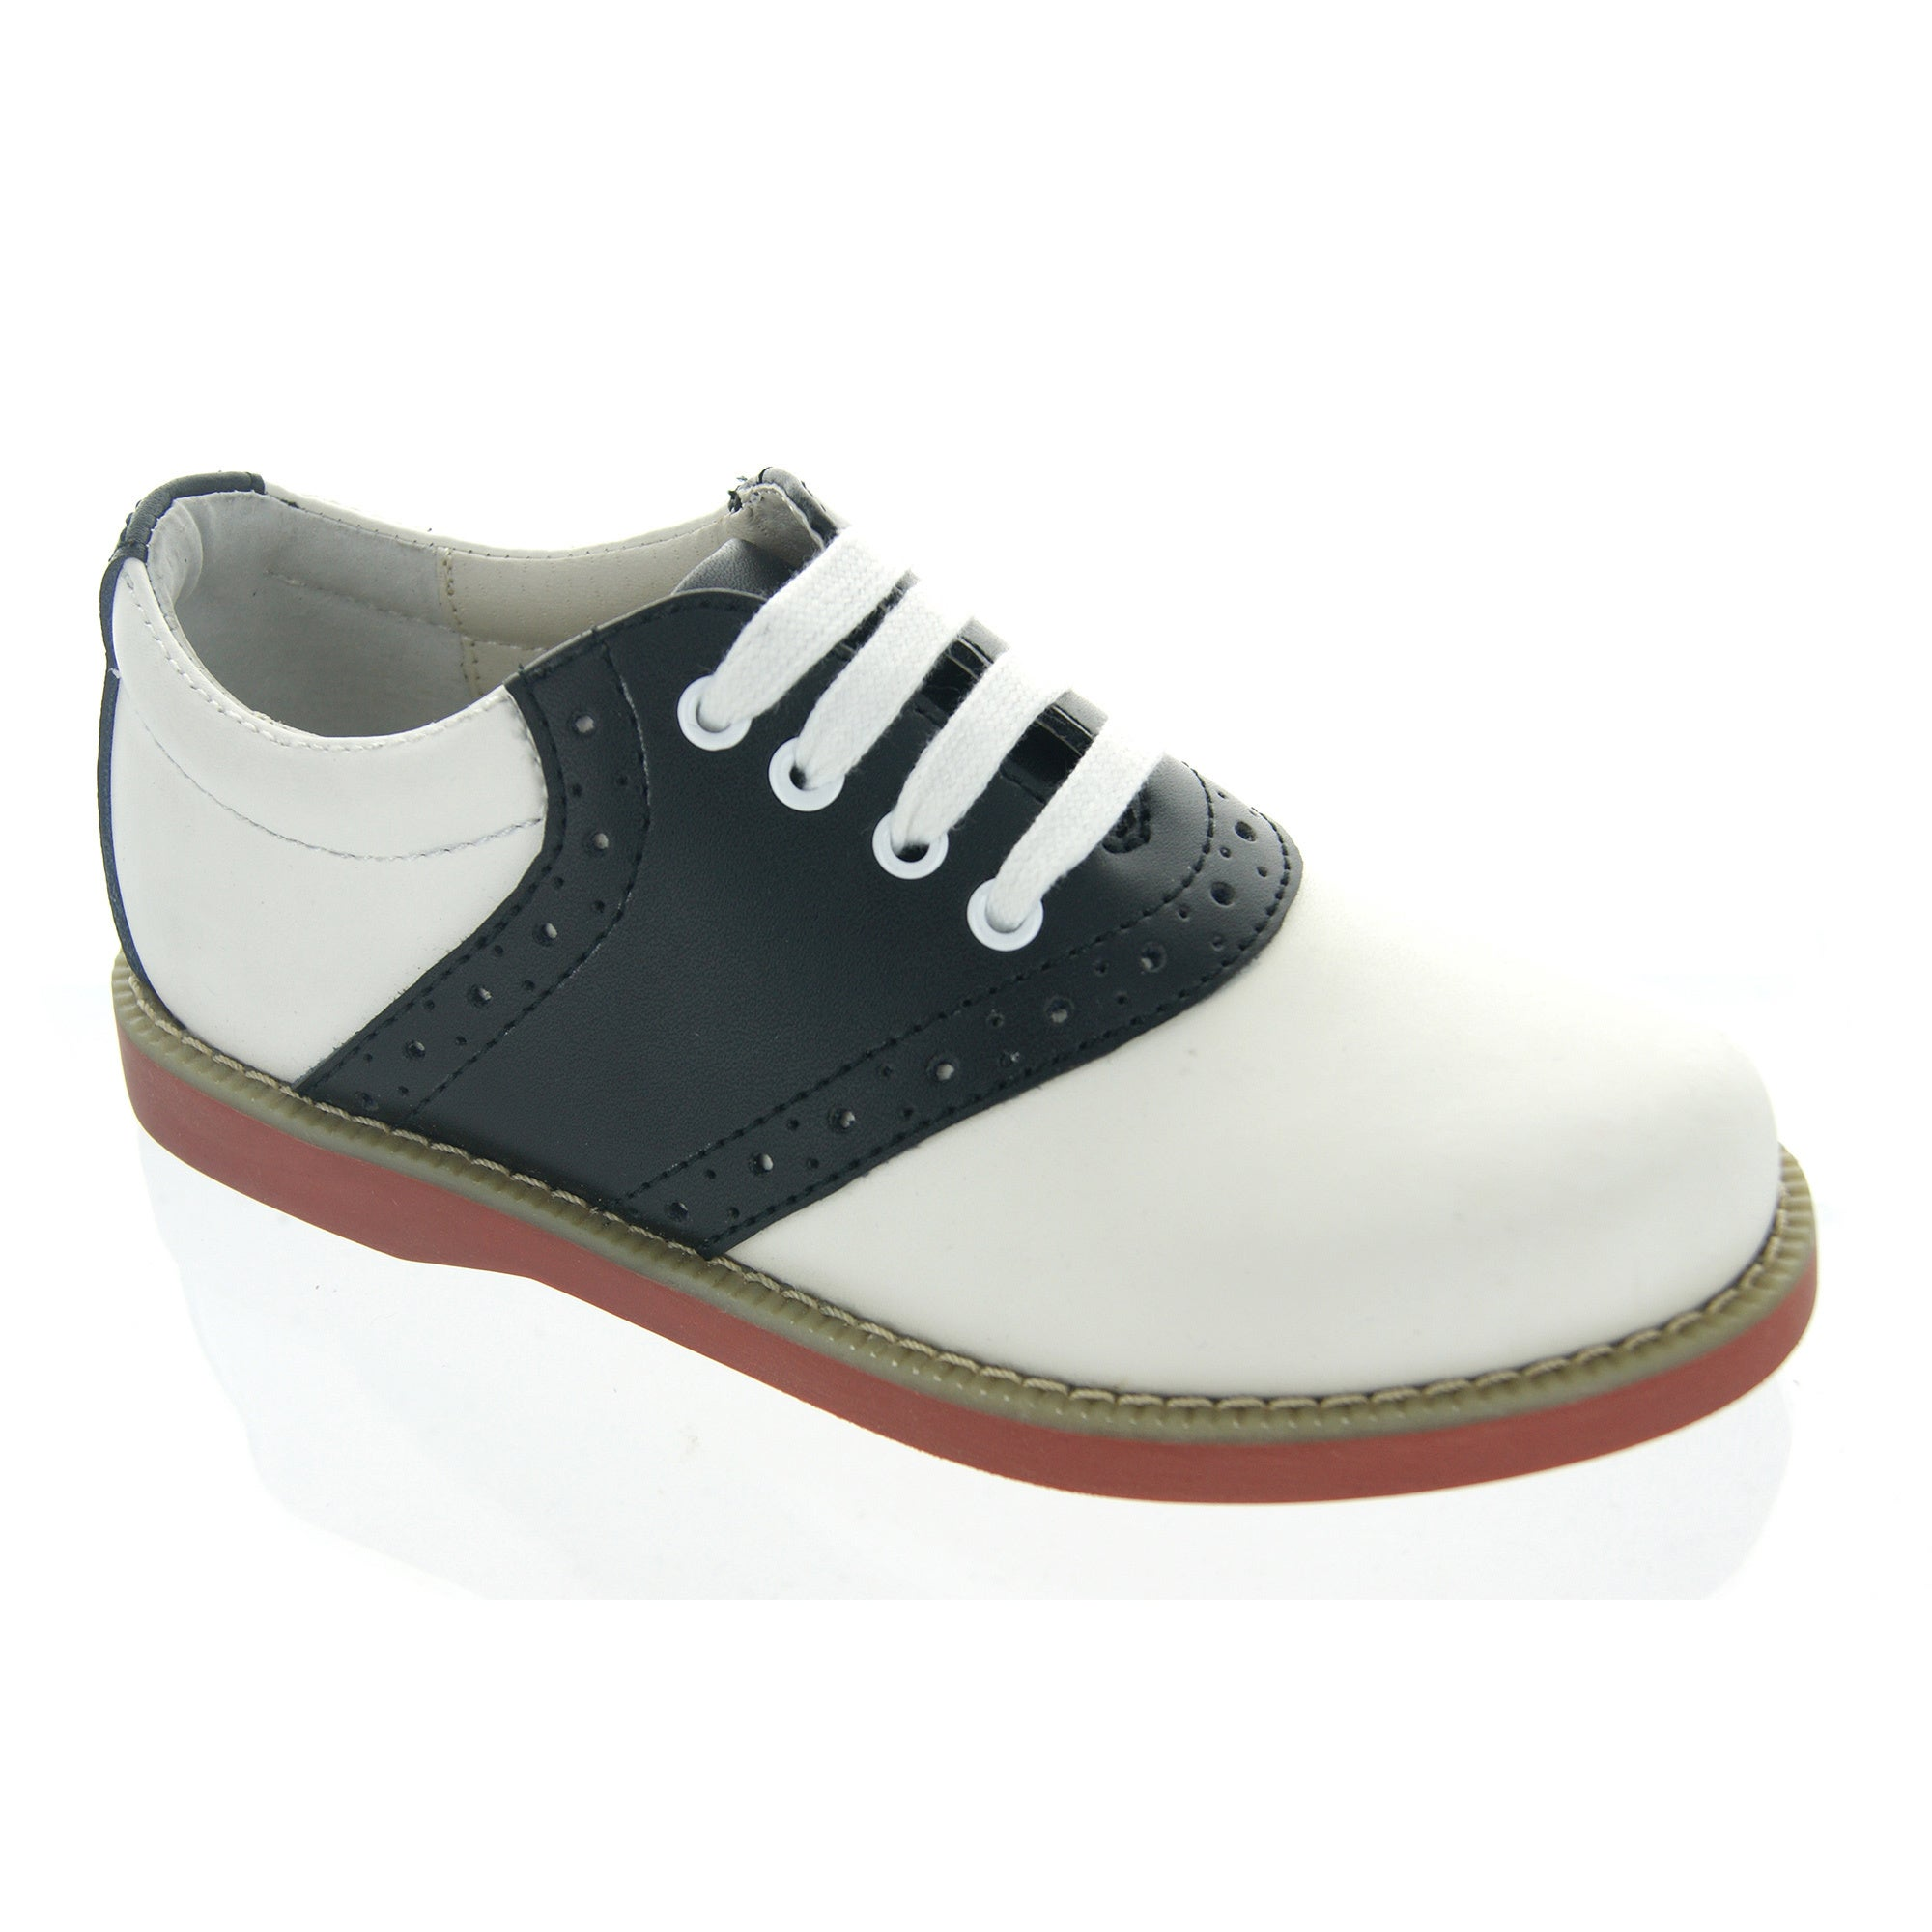 Oxford Saddle Shoes - Overstock